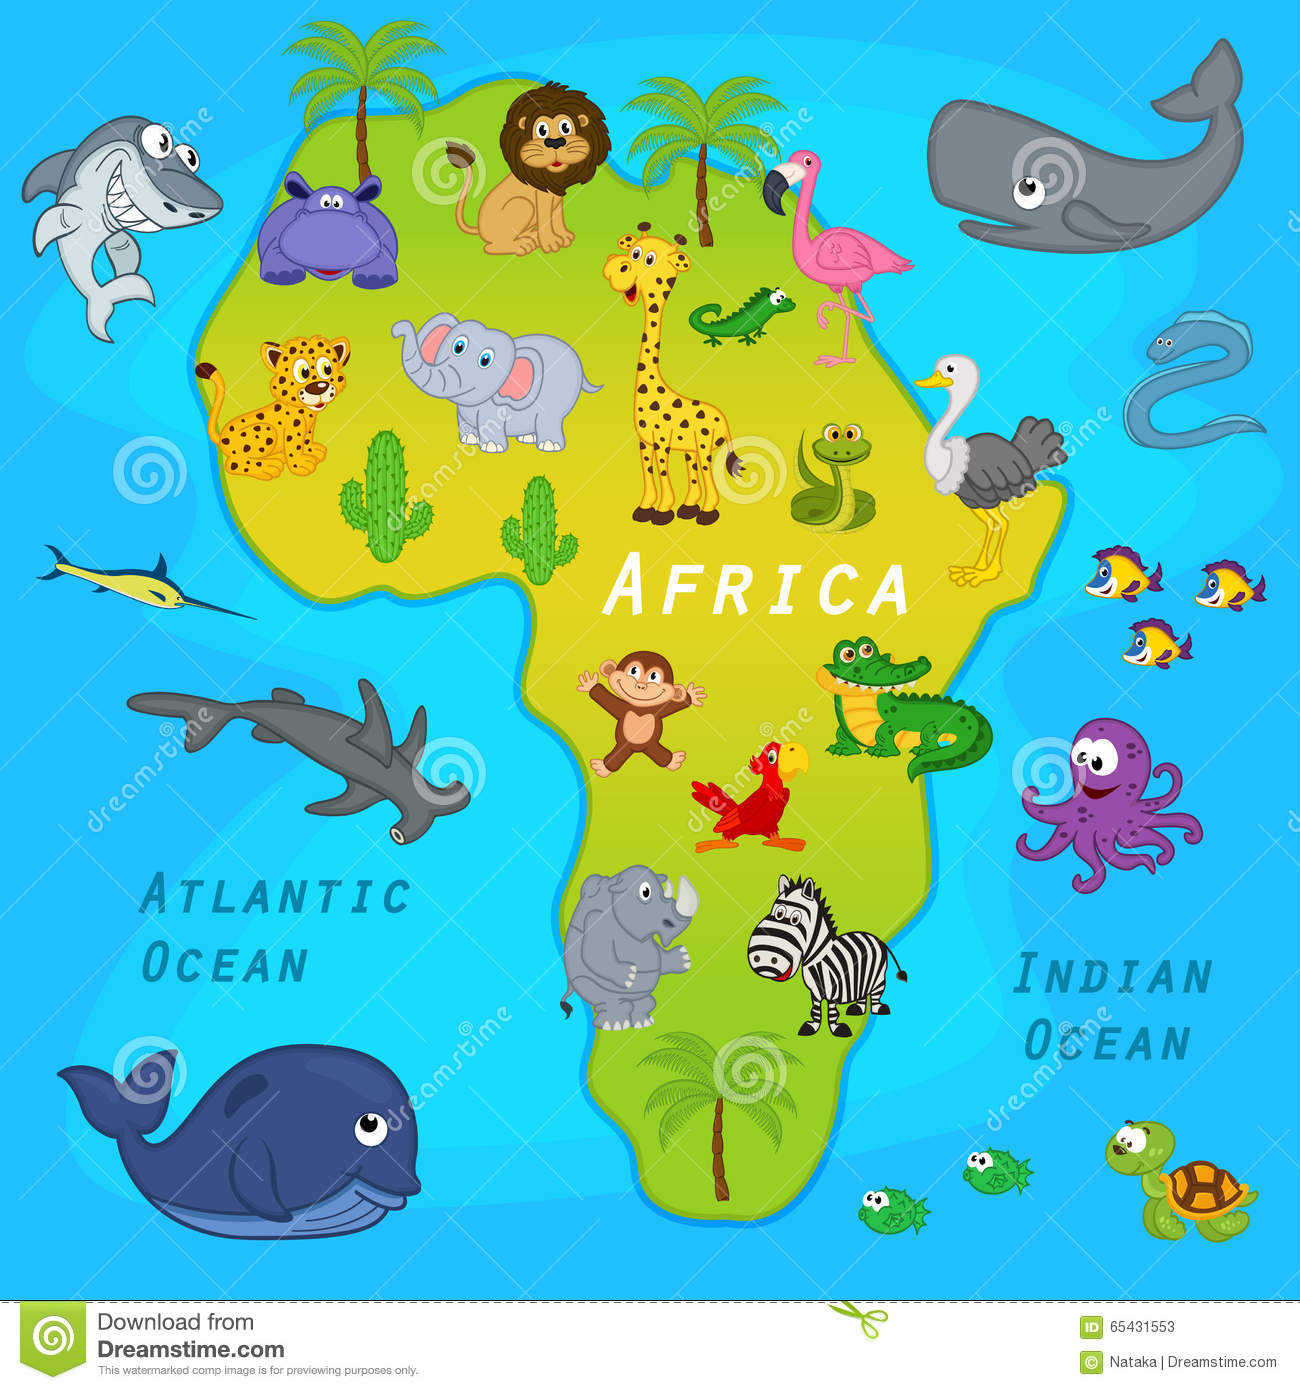 Map of Africa with animals stock vector. Illustration of continent